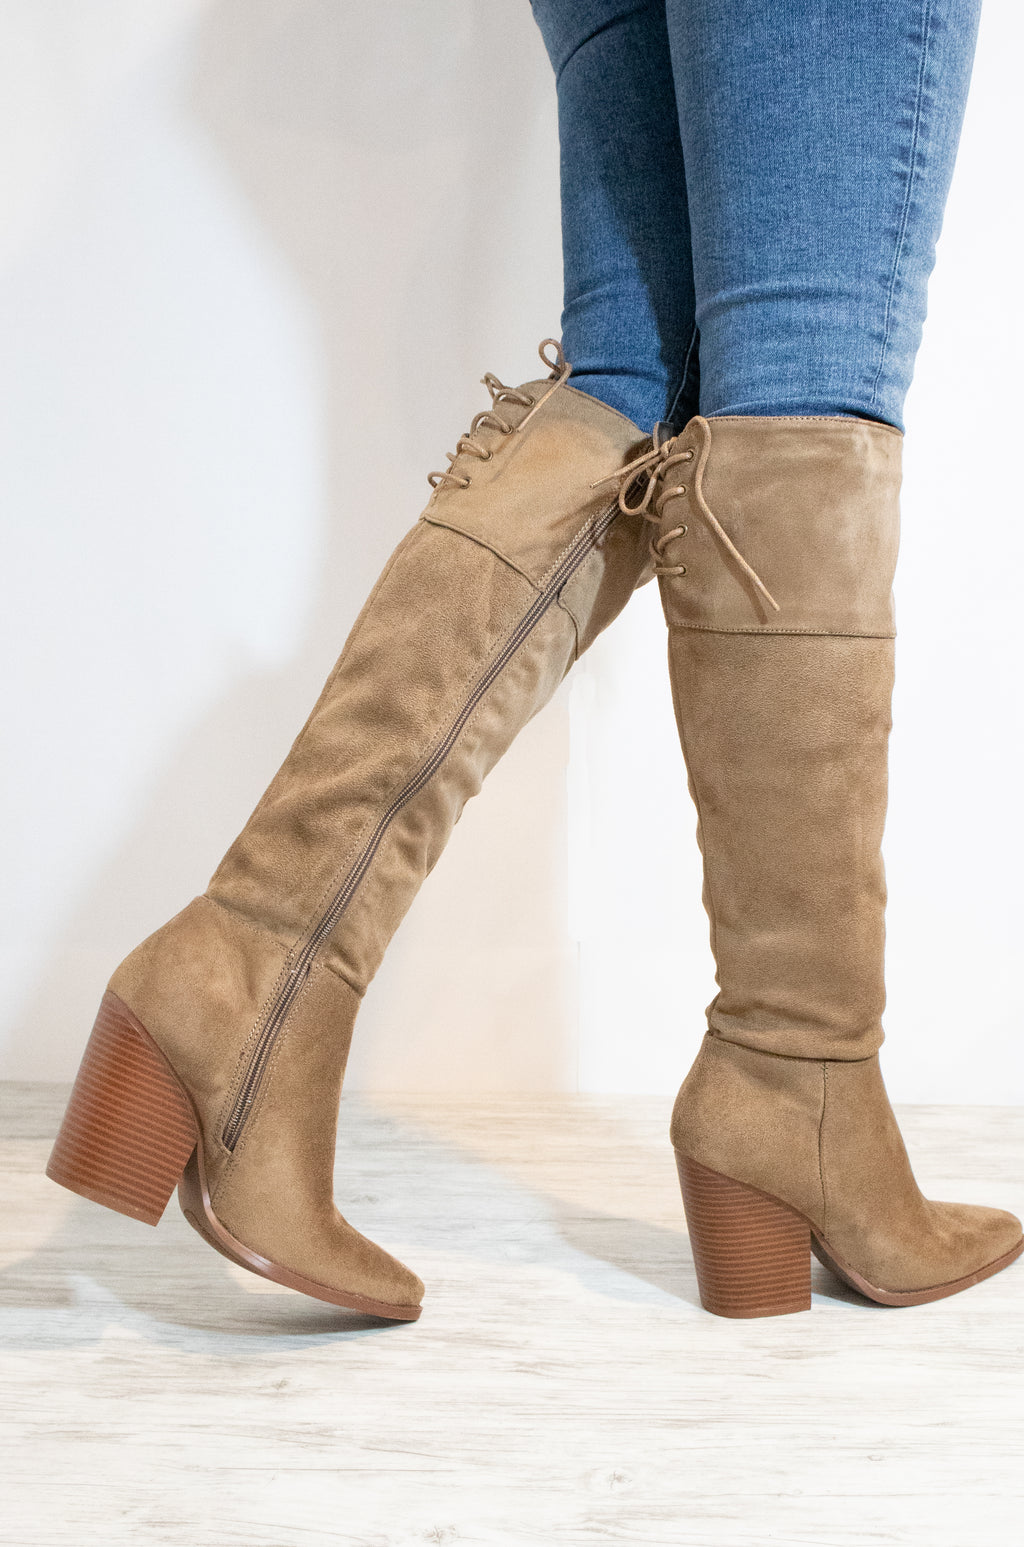 Sweet Strut - Taupe Knee High Boots